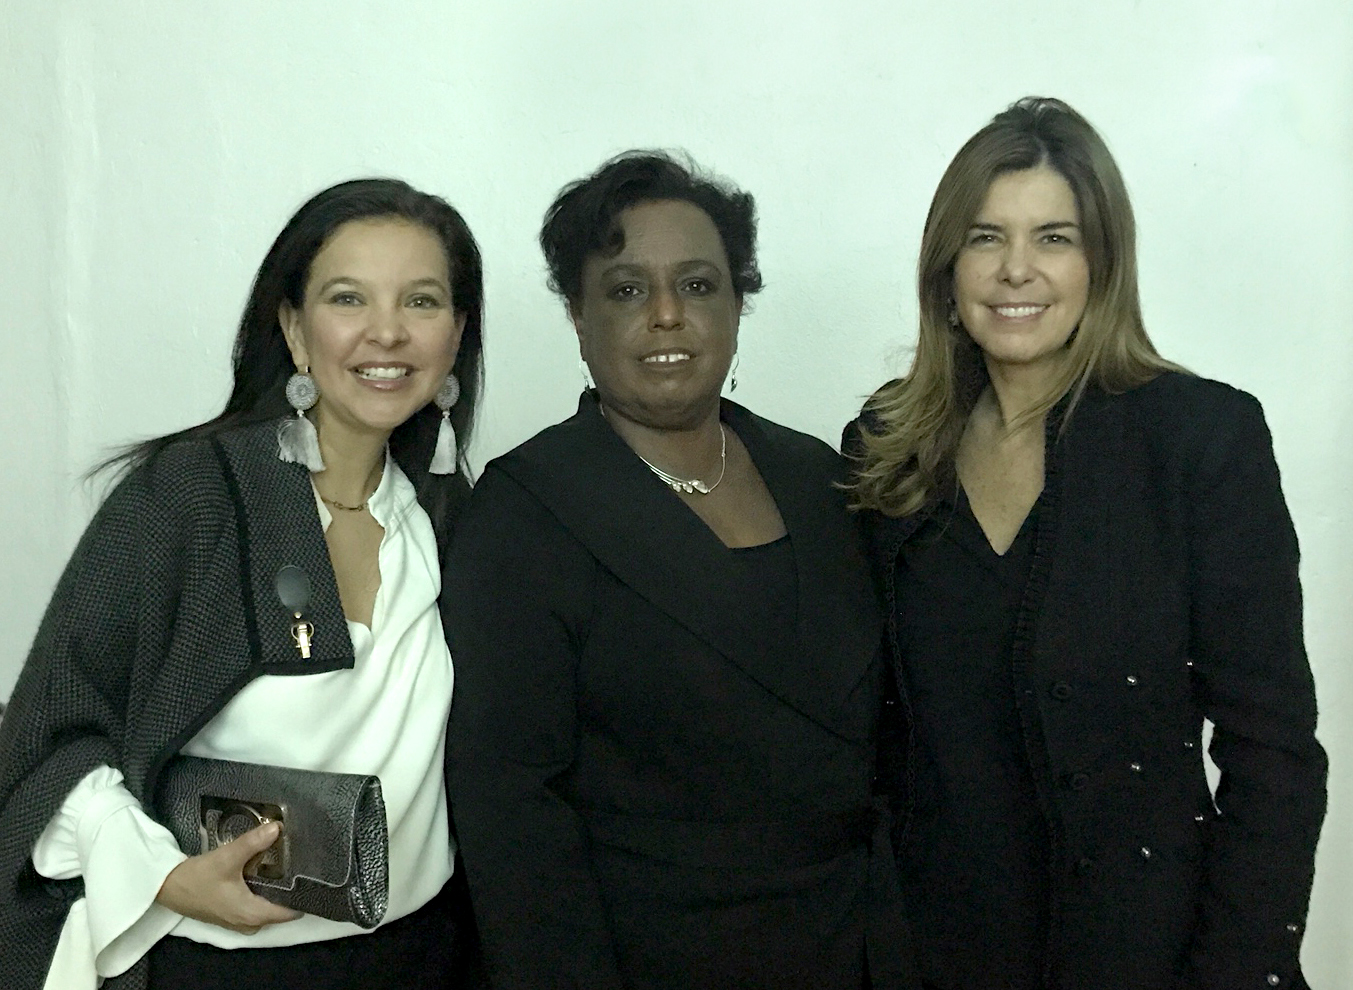 - Commissioner of the Mayor's Office to End Domestic and Gender Based Violence Cecile Noel, Maria Isabel Nieto, General Consul of Colombia, Pilar Verú, Board Member at our Annual Gala